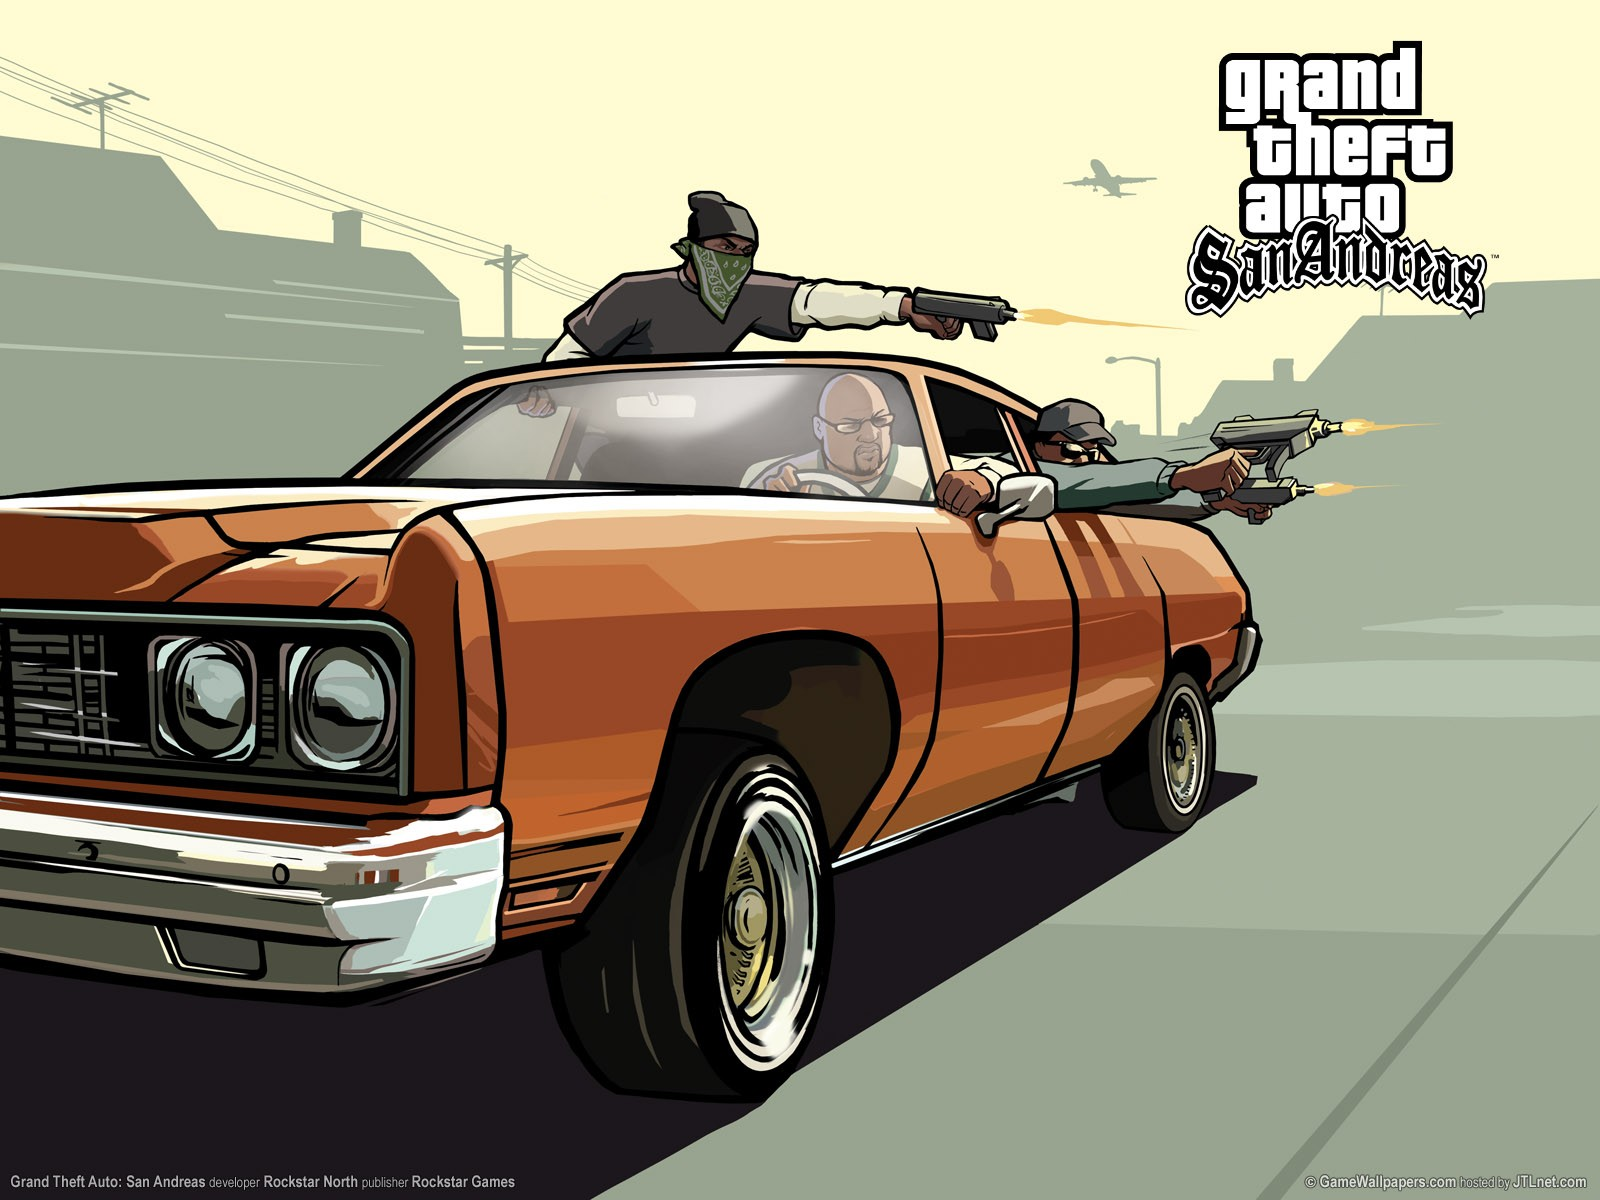 Image result for grand theft auto san andreas cj